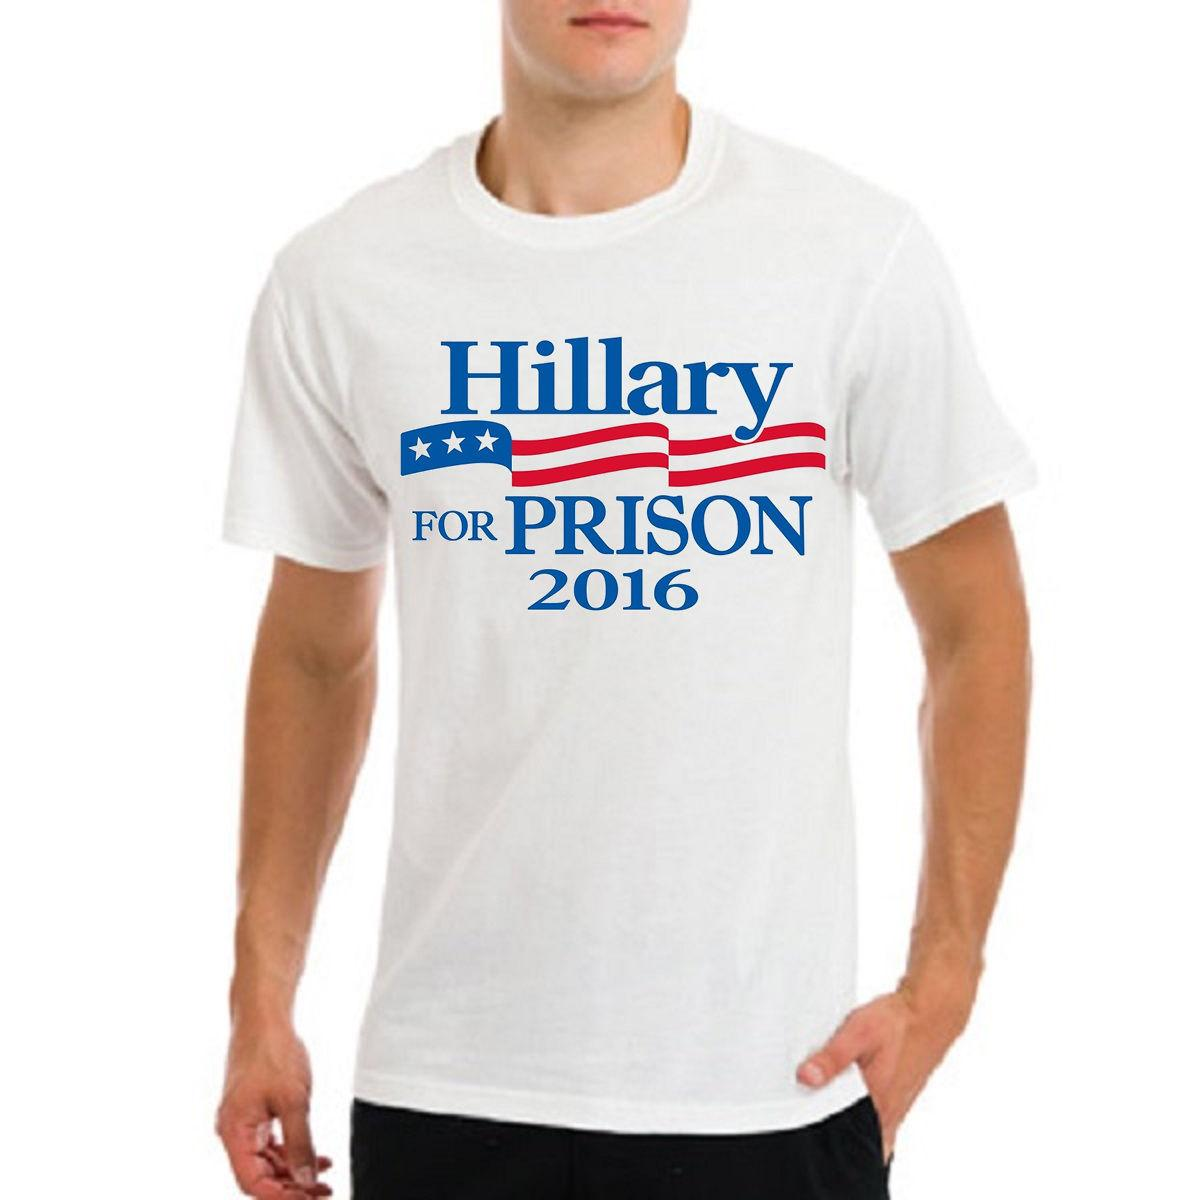 6e23f6fecd Hillary Clinton For Prison, USA President Elections Funny Mens White T  Shirt Funny Unisex Casual Tee Gift Cool Tee Shirt T Shirt Online Buy From  Tshirtsinc, ...